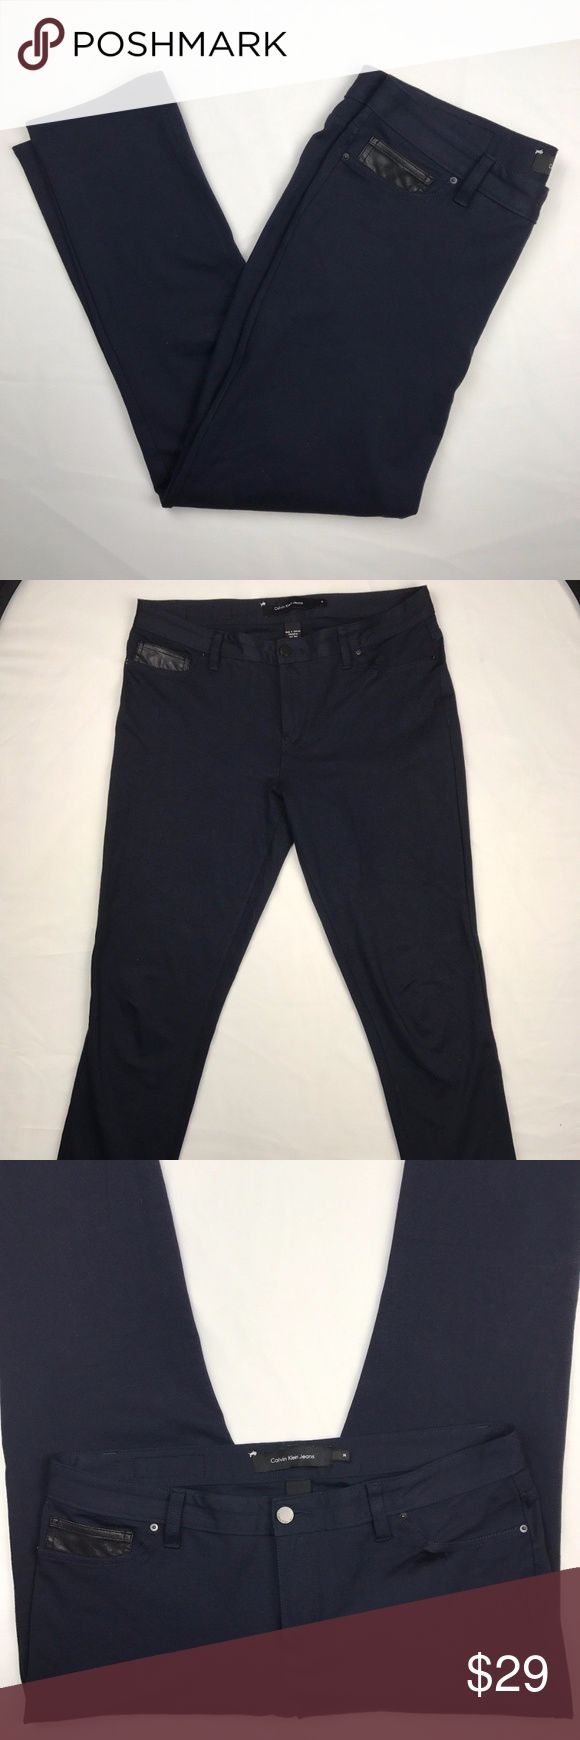 Calvin Klein Jeans Size 14 Dark Navy Blue Jeggins Calvin Klein Jeans Size 14  Dark Navy Blue Womens skinny fit Jeggings. Zipper and button closure. Functioning back pockets. Dark Rinse Leggings a dark rinse updates these slimmest fit jeans in soft cotton stretch. Calvin Klein Jeans sits at the waist, slimmest fit + skinny leg leggings dark rinse zip fly button front closure 5 pocket styling belt loops logo patch on back of waistband   AB4.117  Inseam: 26  65% Viscose 29% Nylon 6% Elastane…